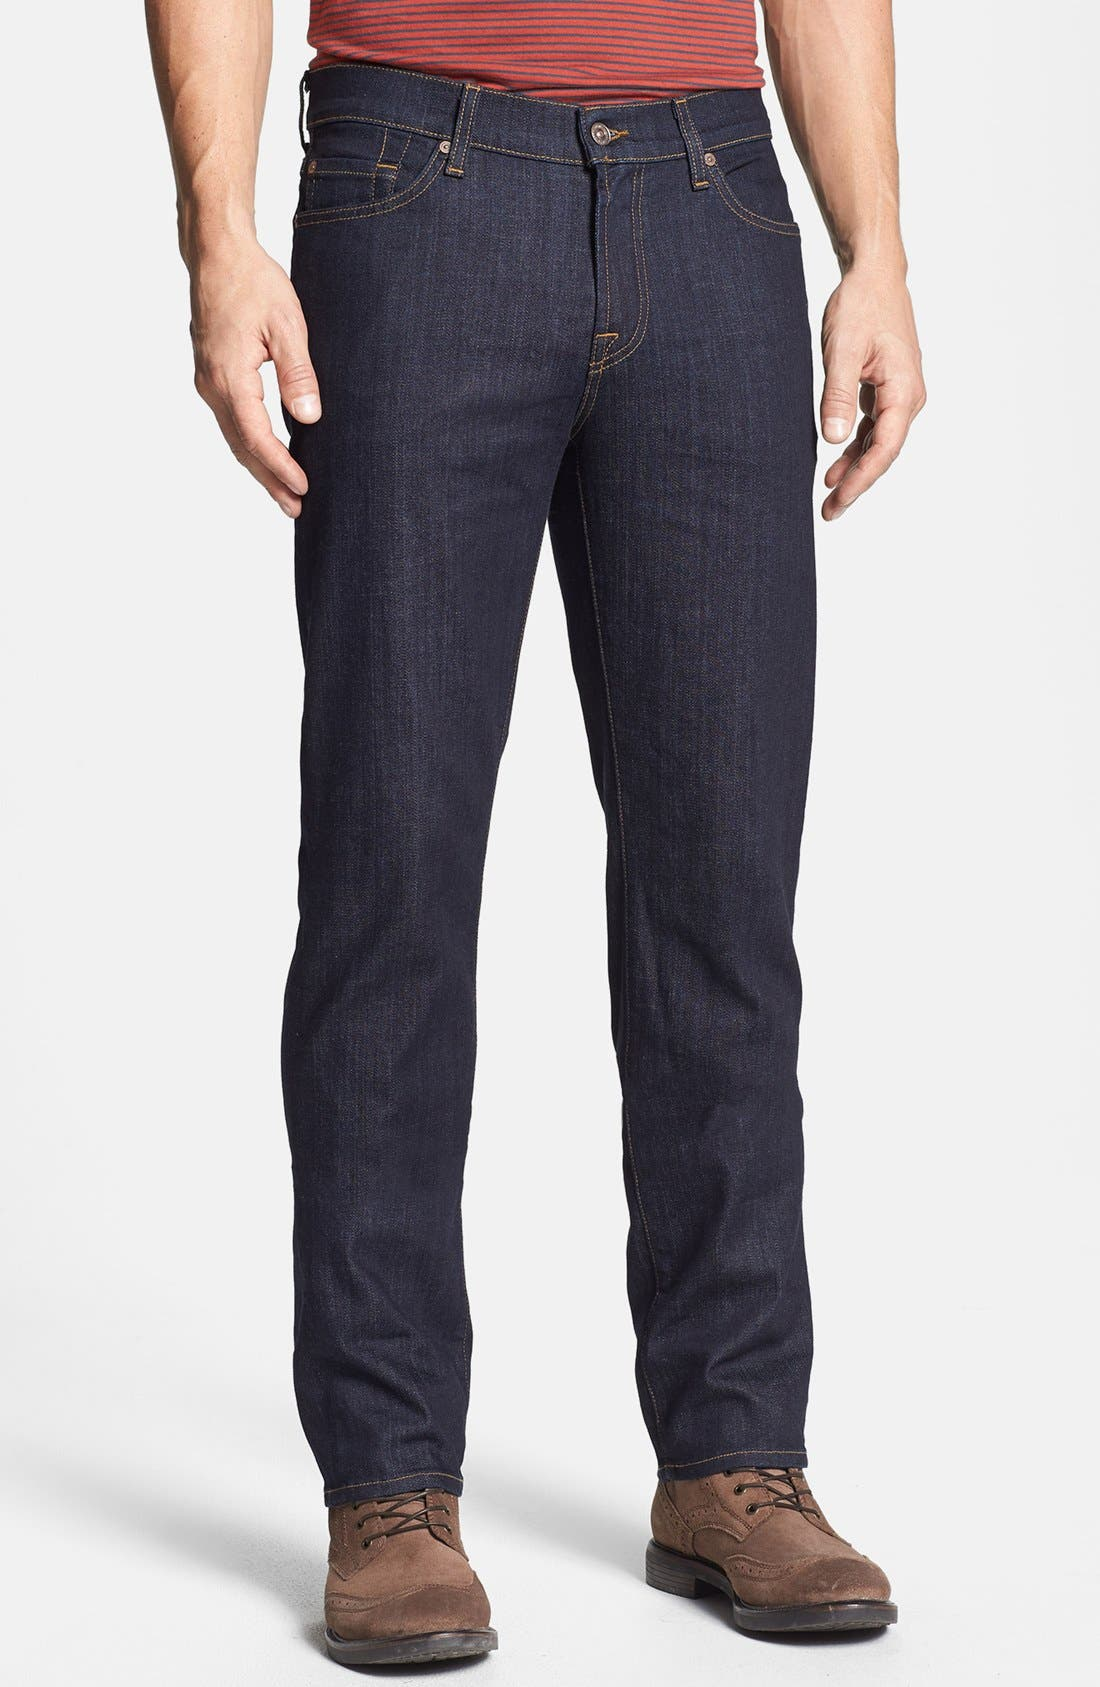 Alternate Image 1 Selected - 7 For All Mankind® 'Slimmy' Slim Fit Jeans (Dark & Clean)